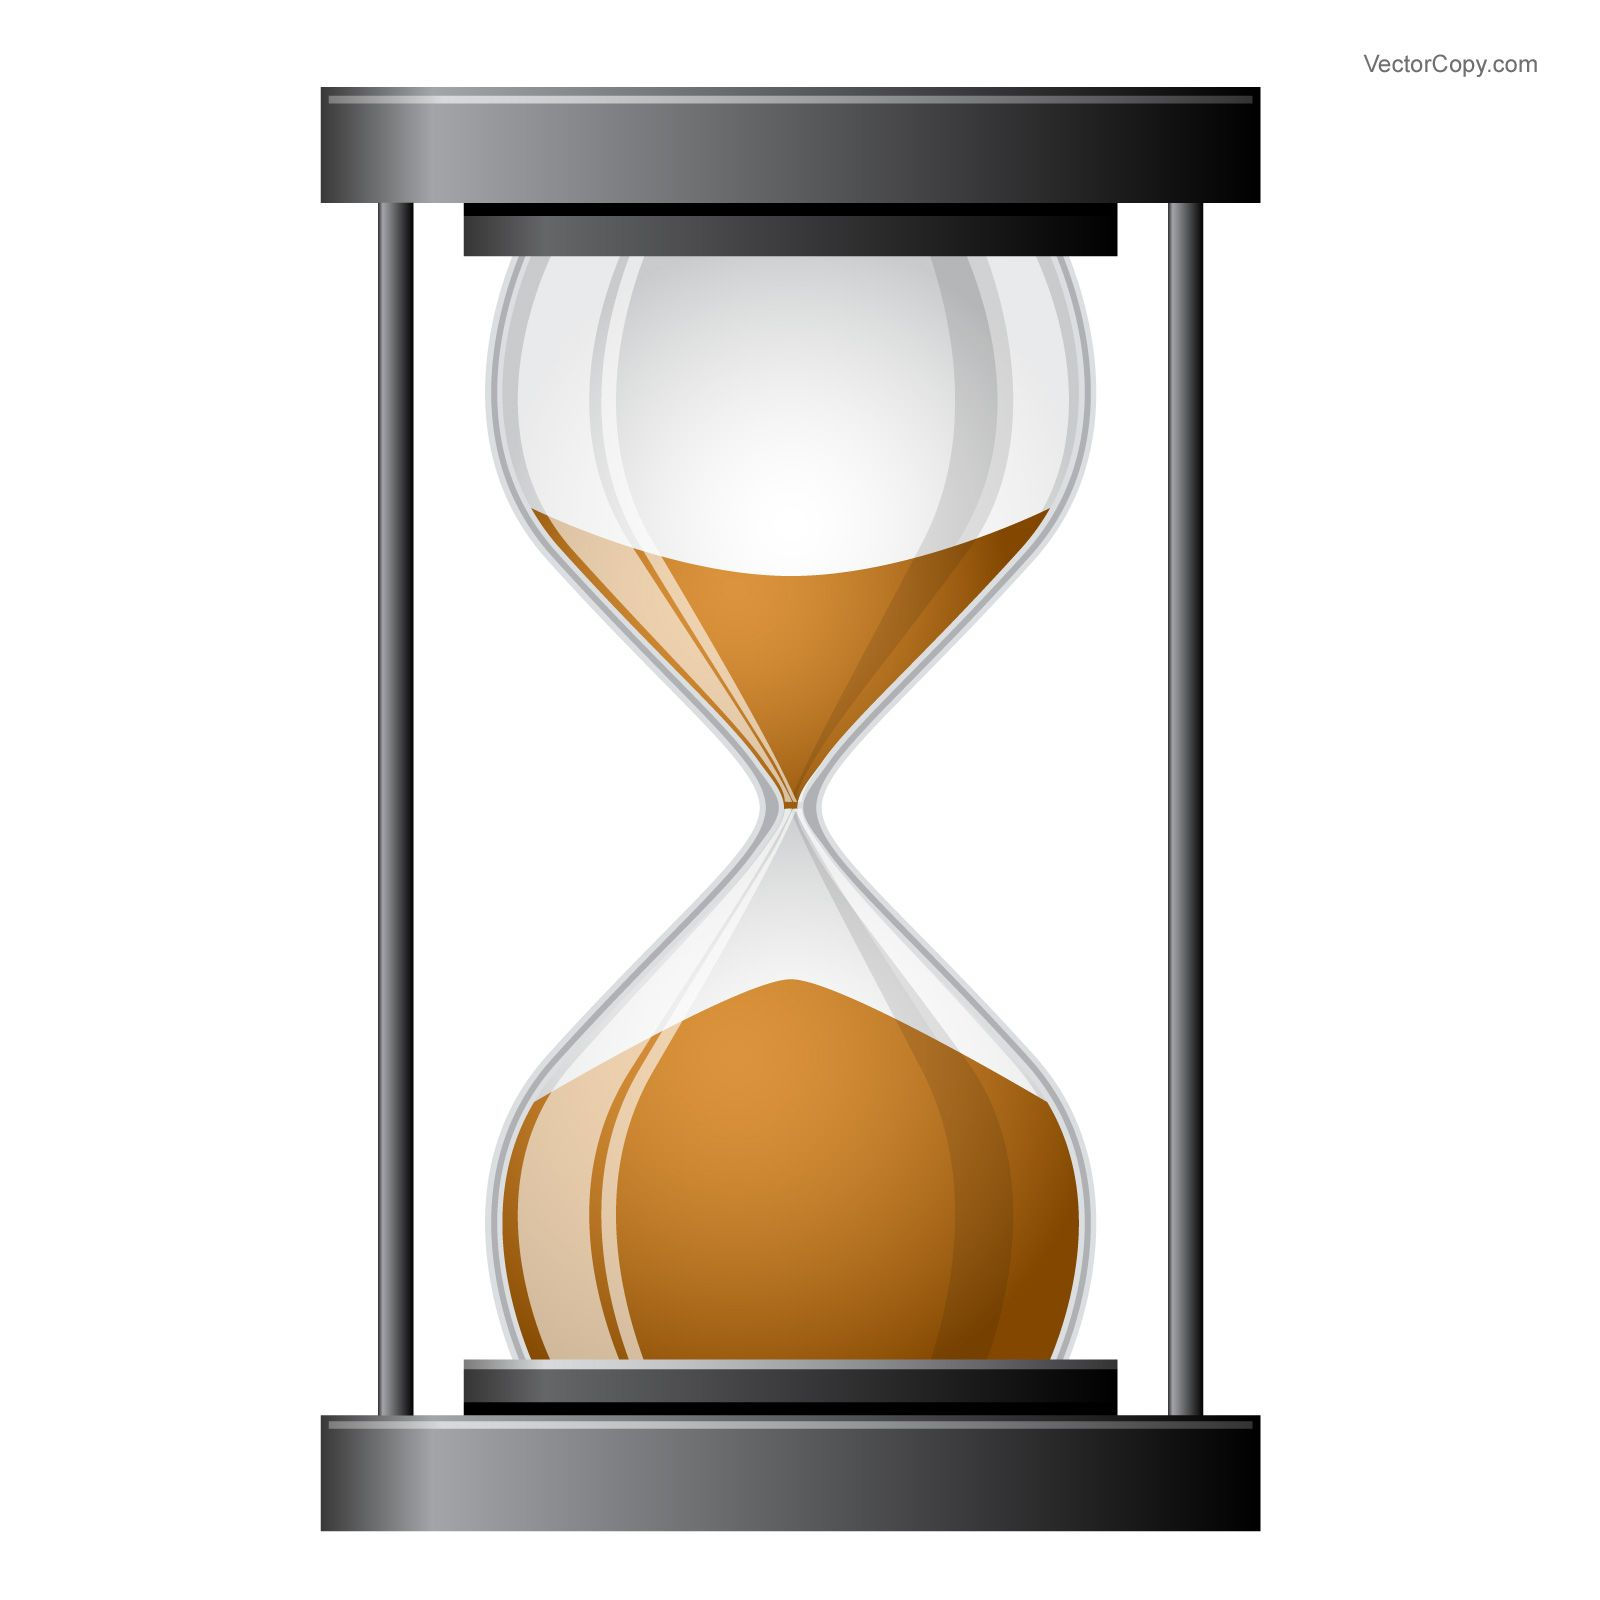 Hourglass icon, free vector in 2019.